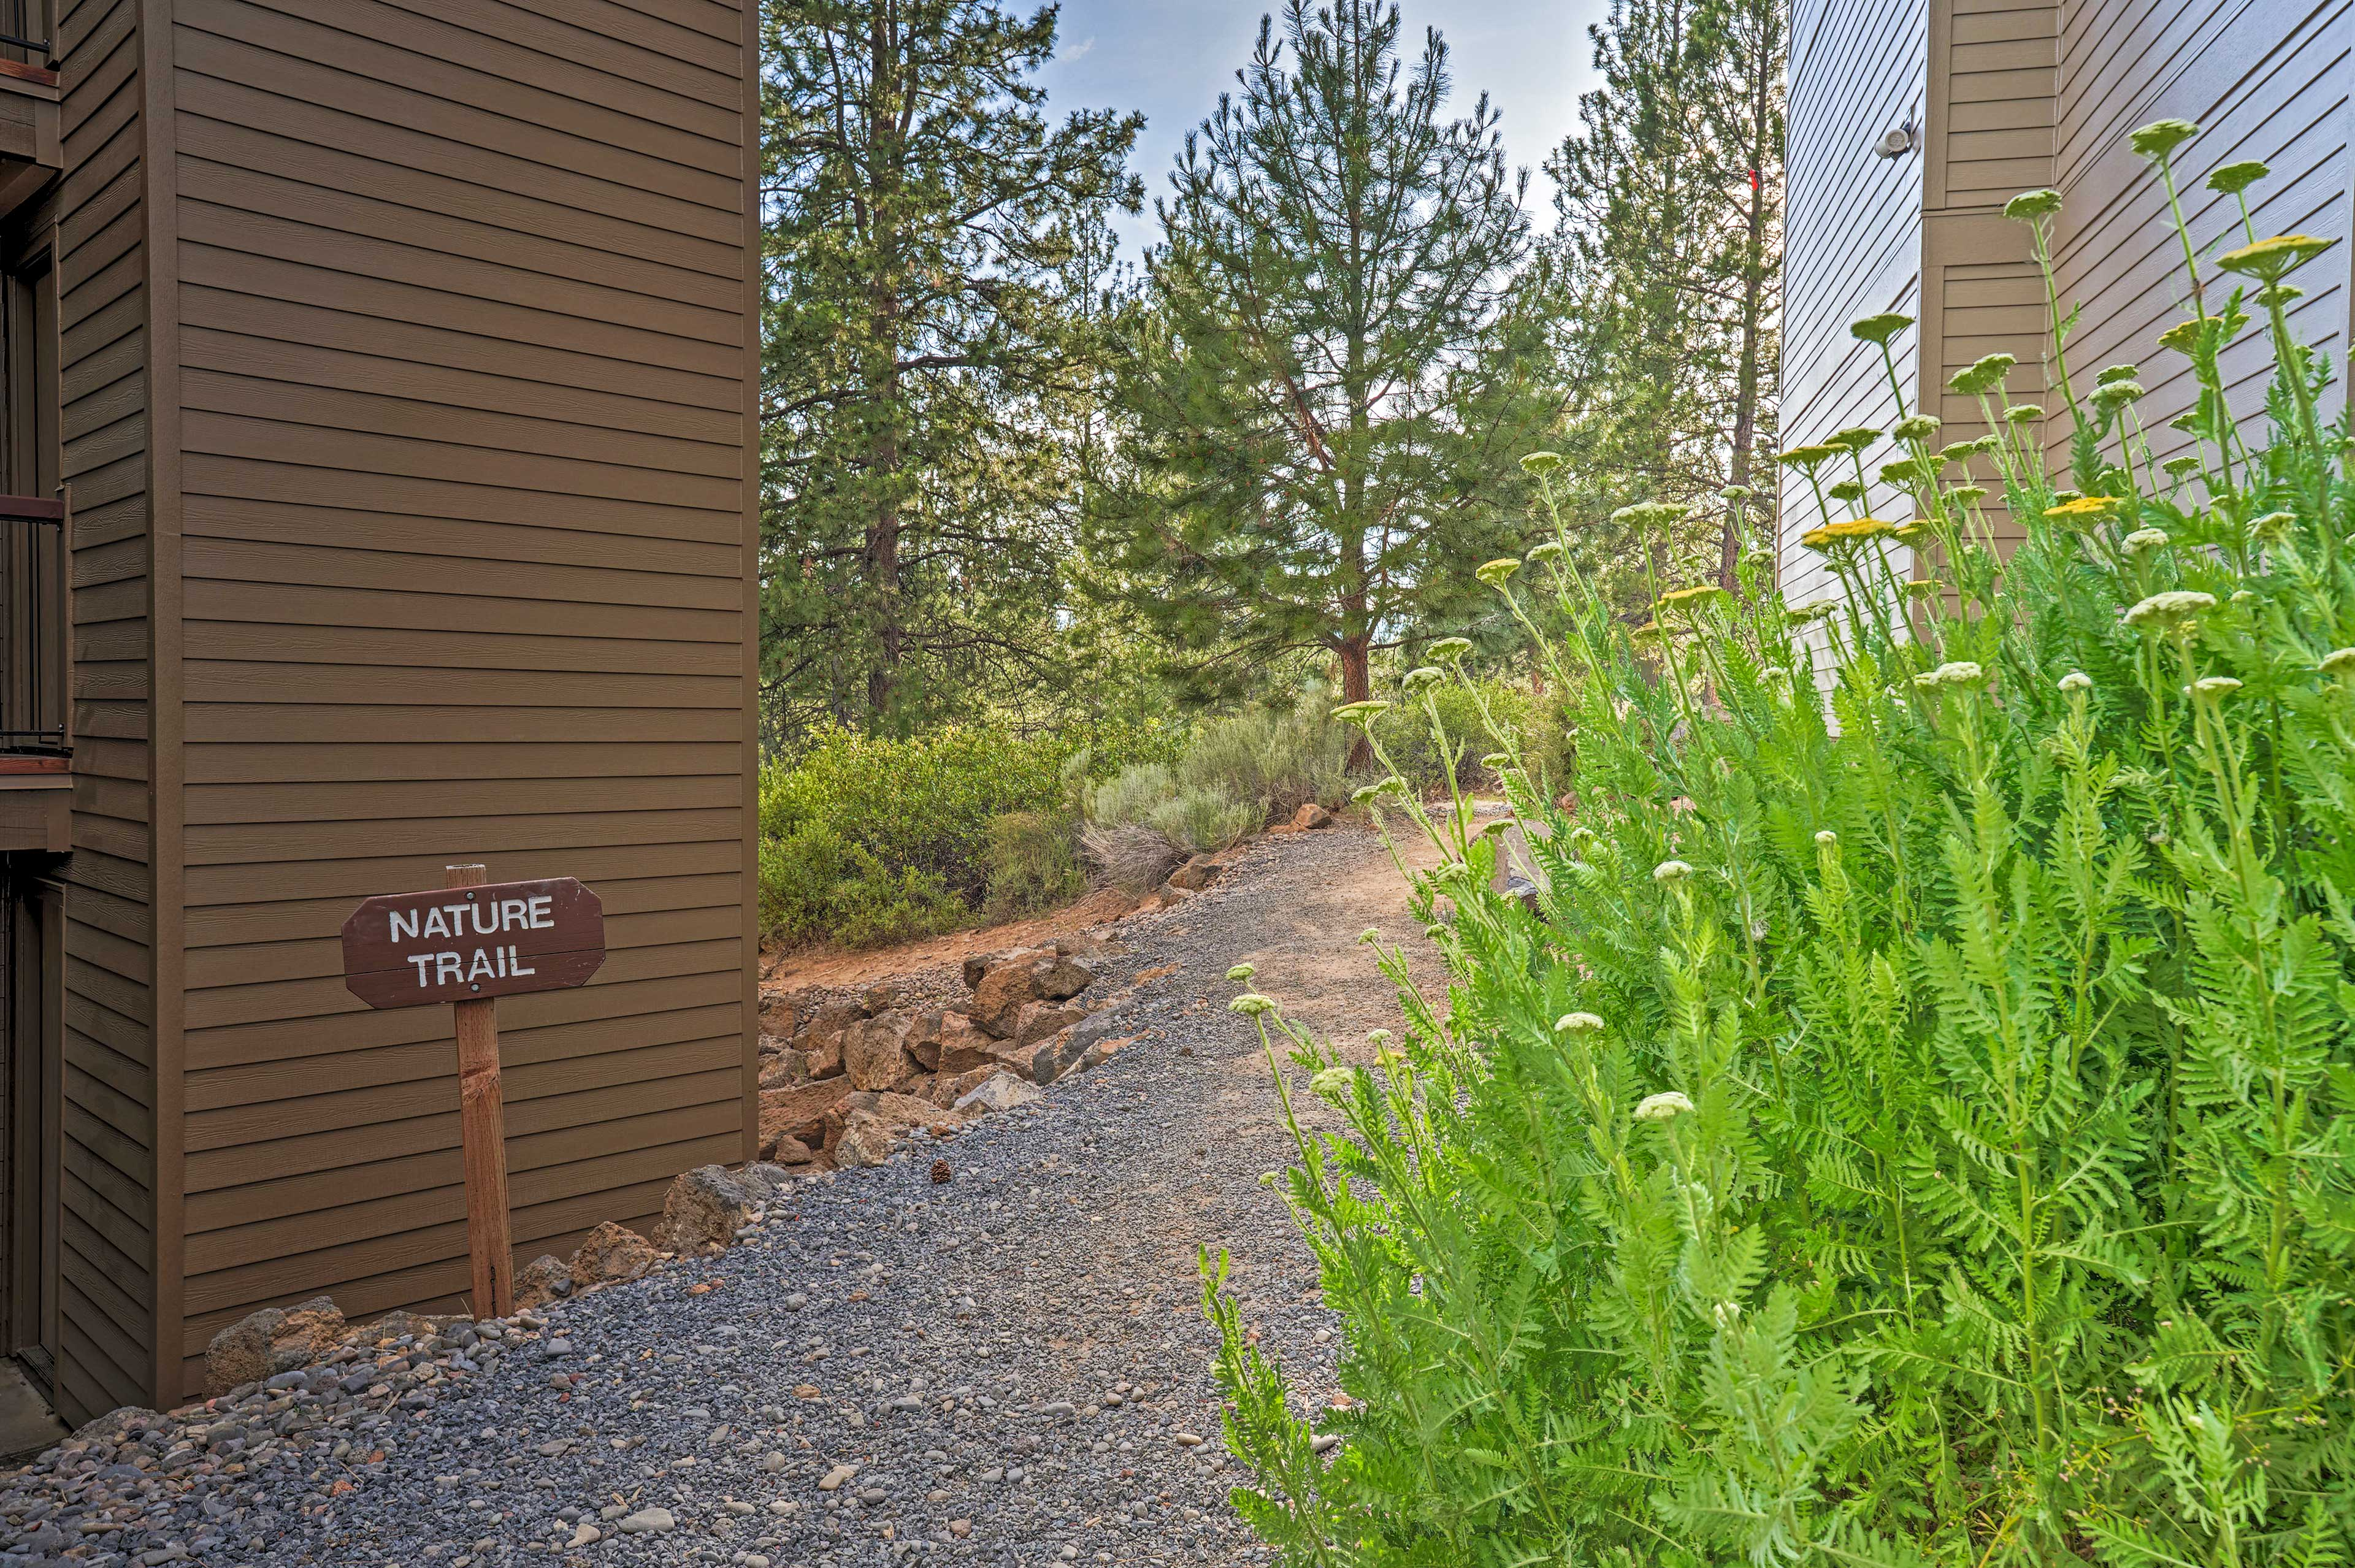 Access to Trailheads